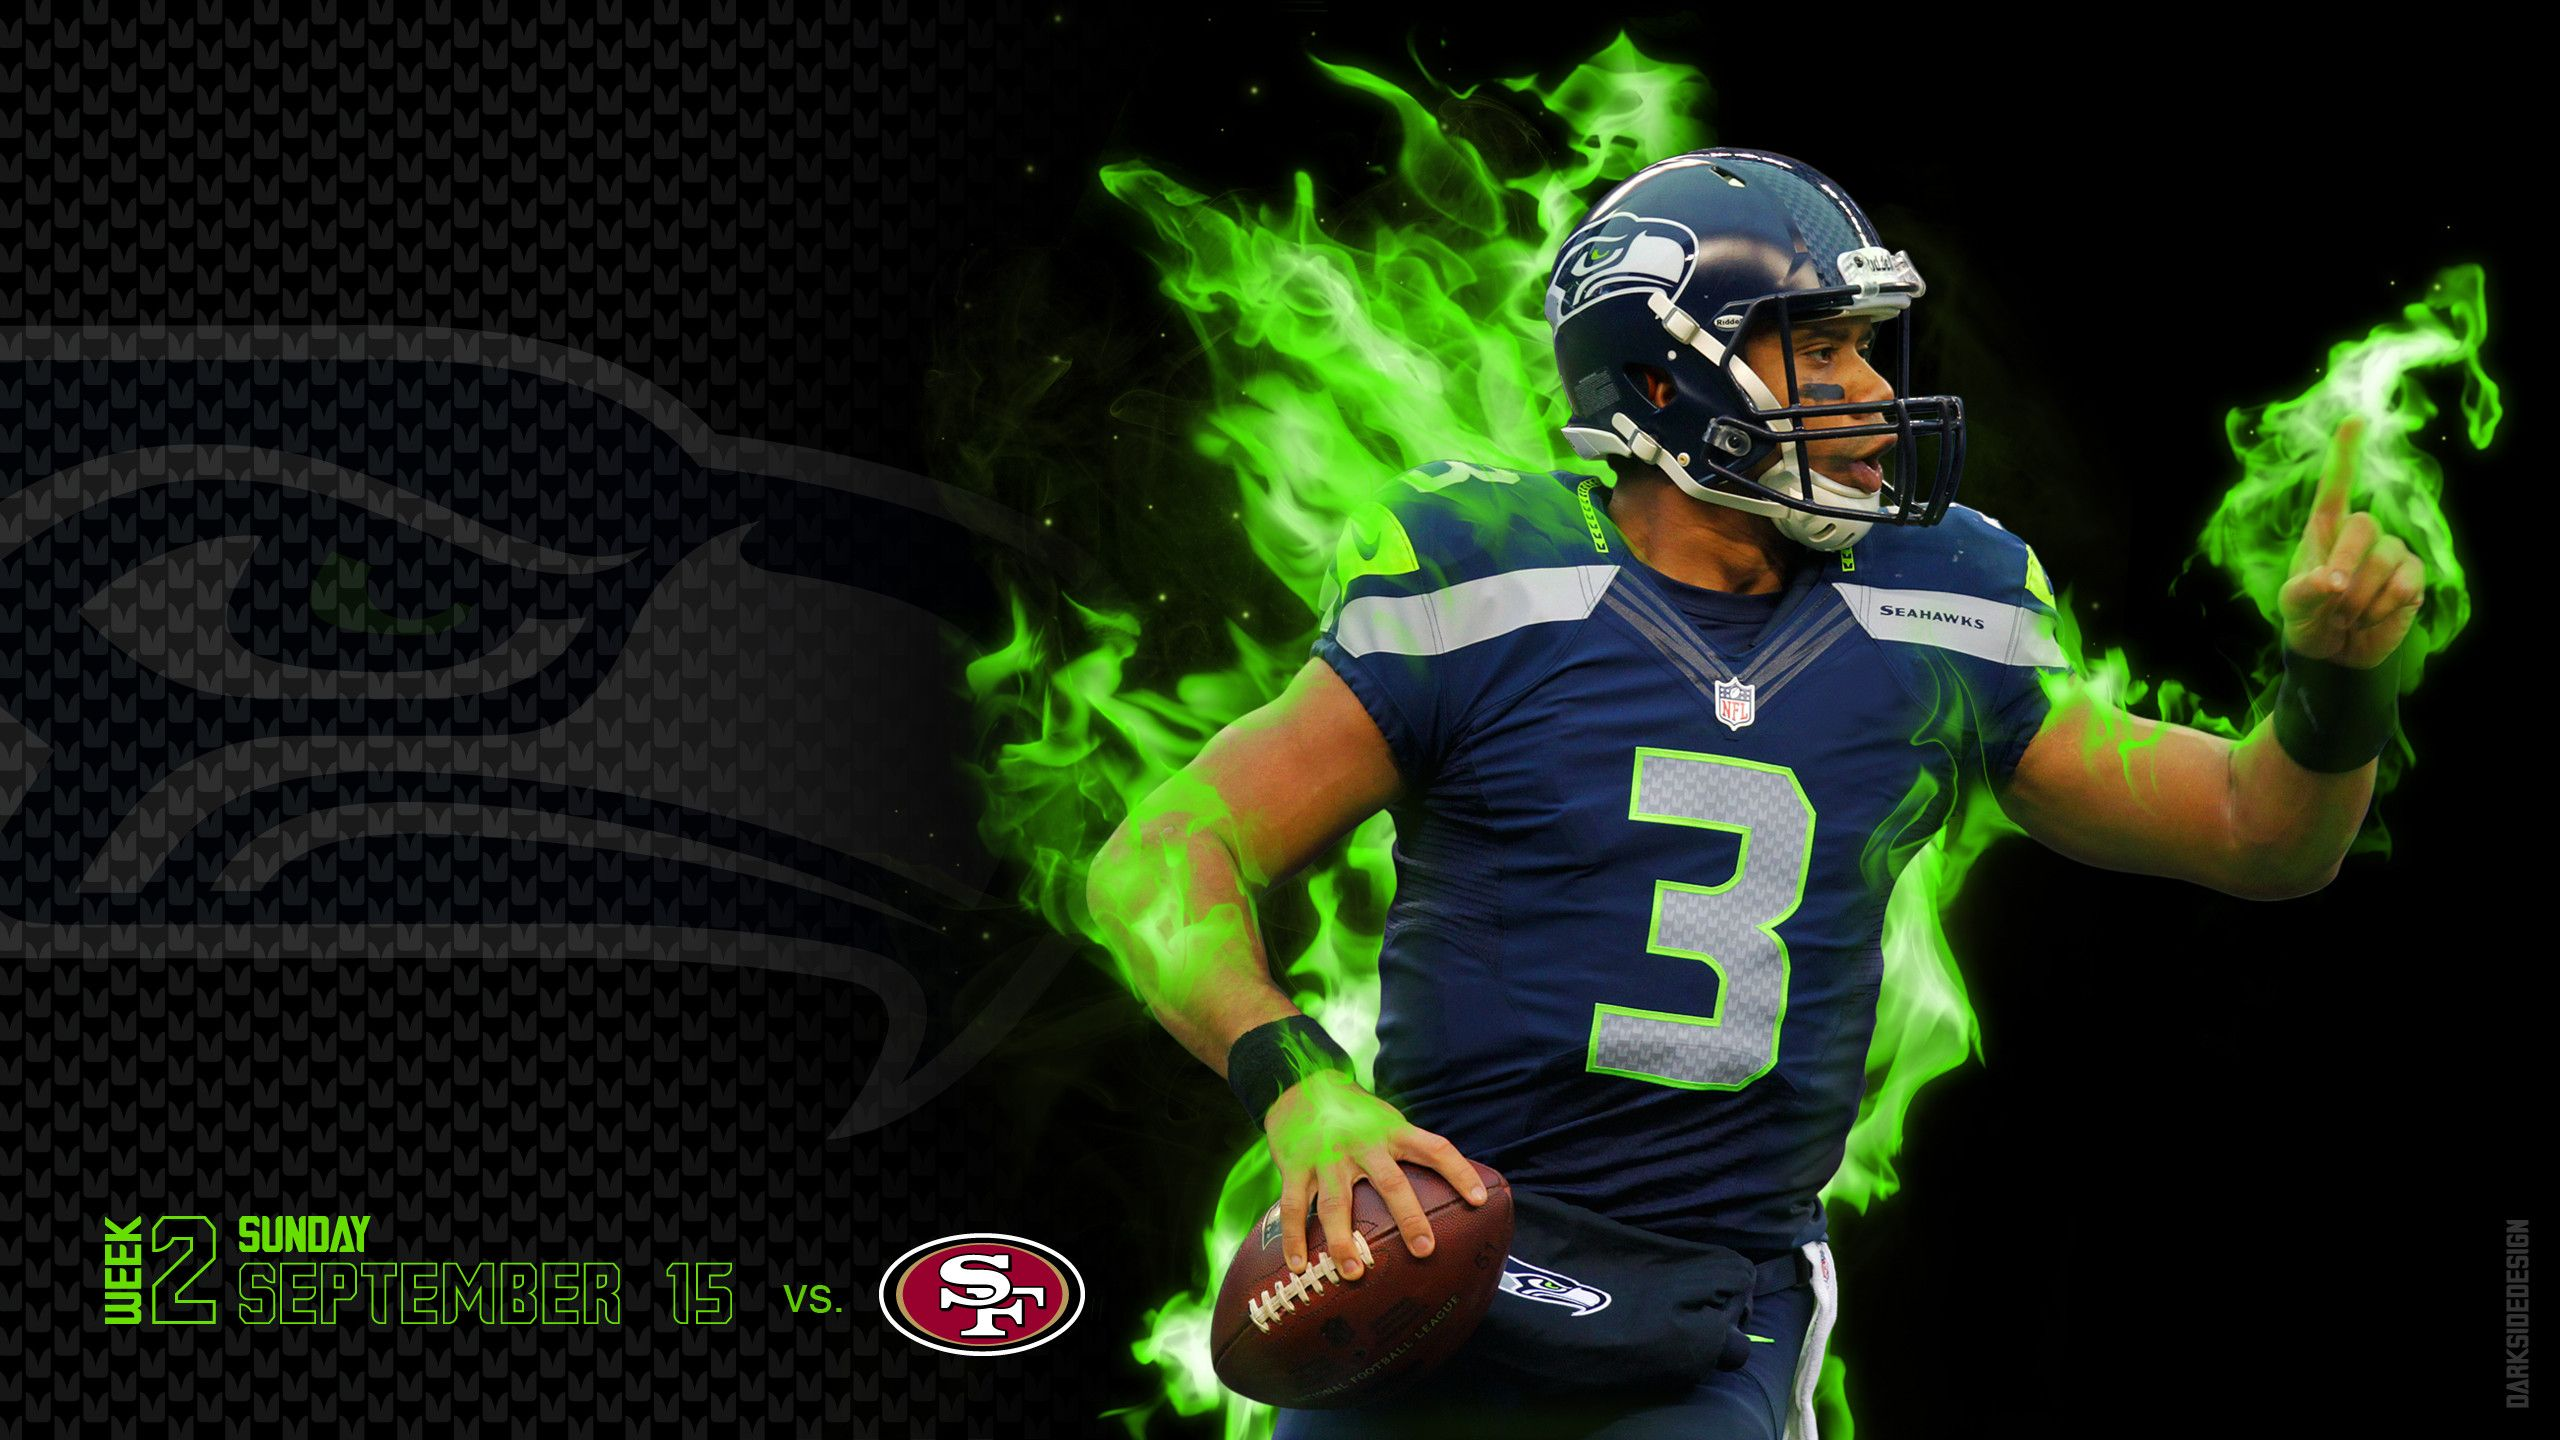 Seattle Seahawks Wallpapers Mywallpapers Site In 2020 Seattle Seahawks Seahawks Seattle Seahawks Football